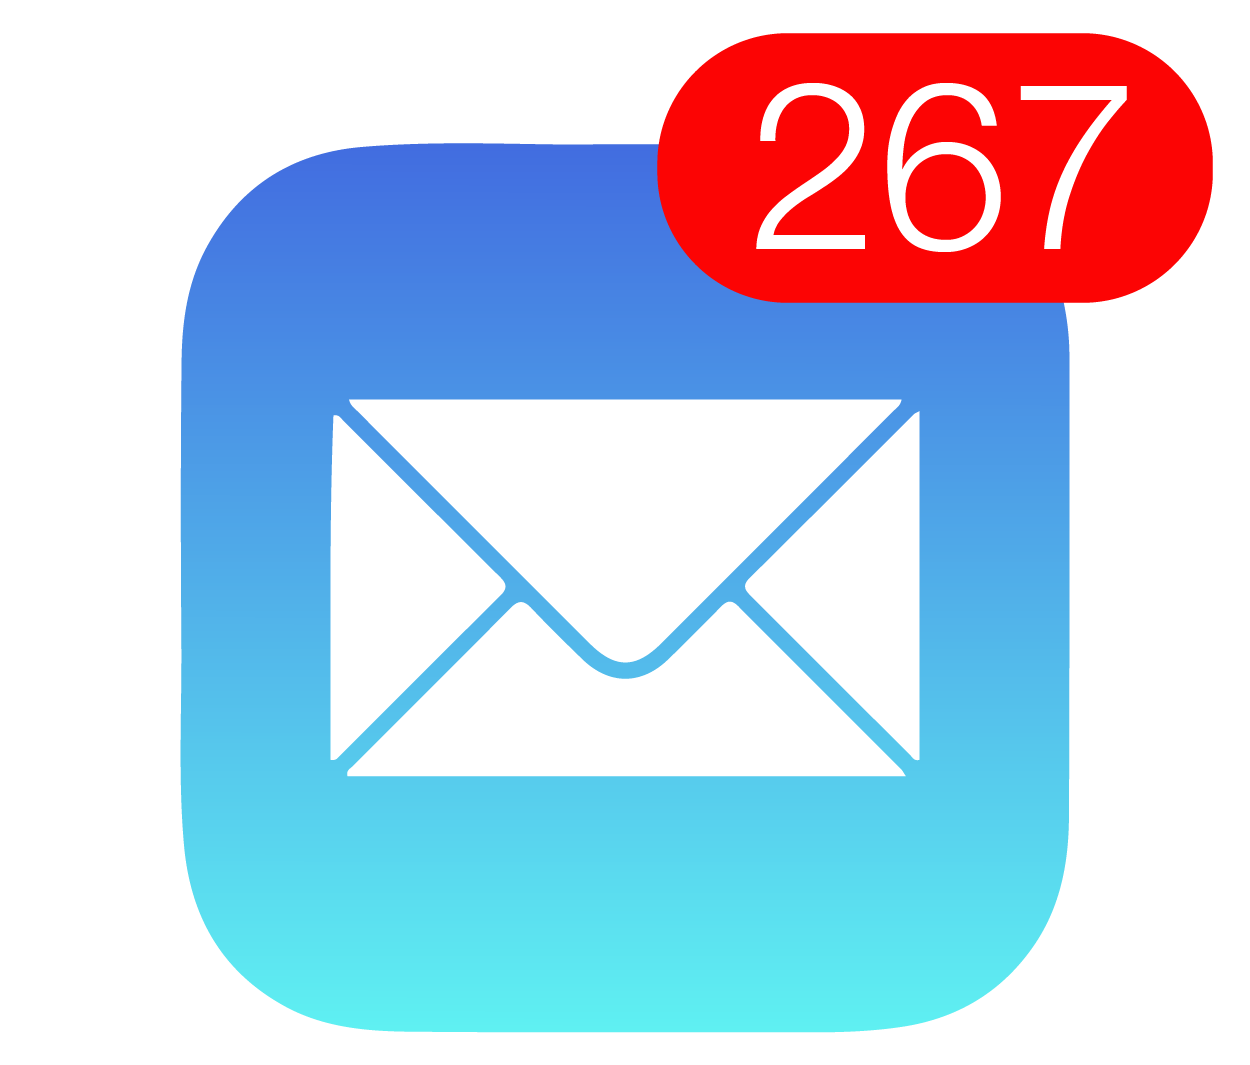 Email clipart means communication. Internal communications emails that